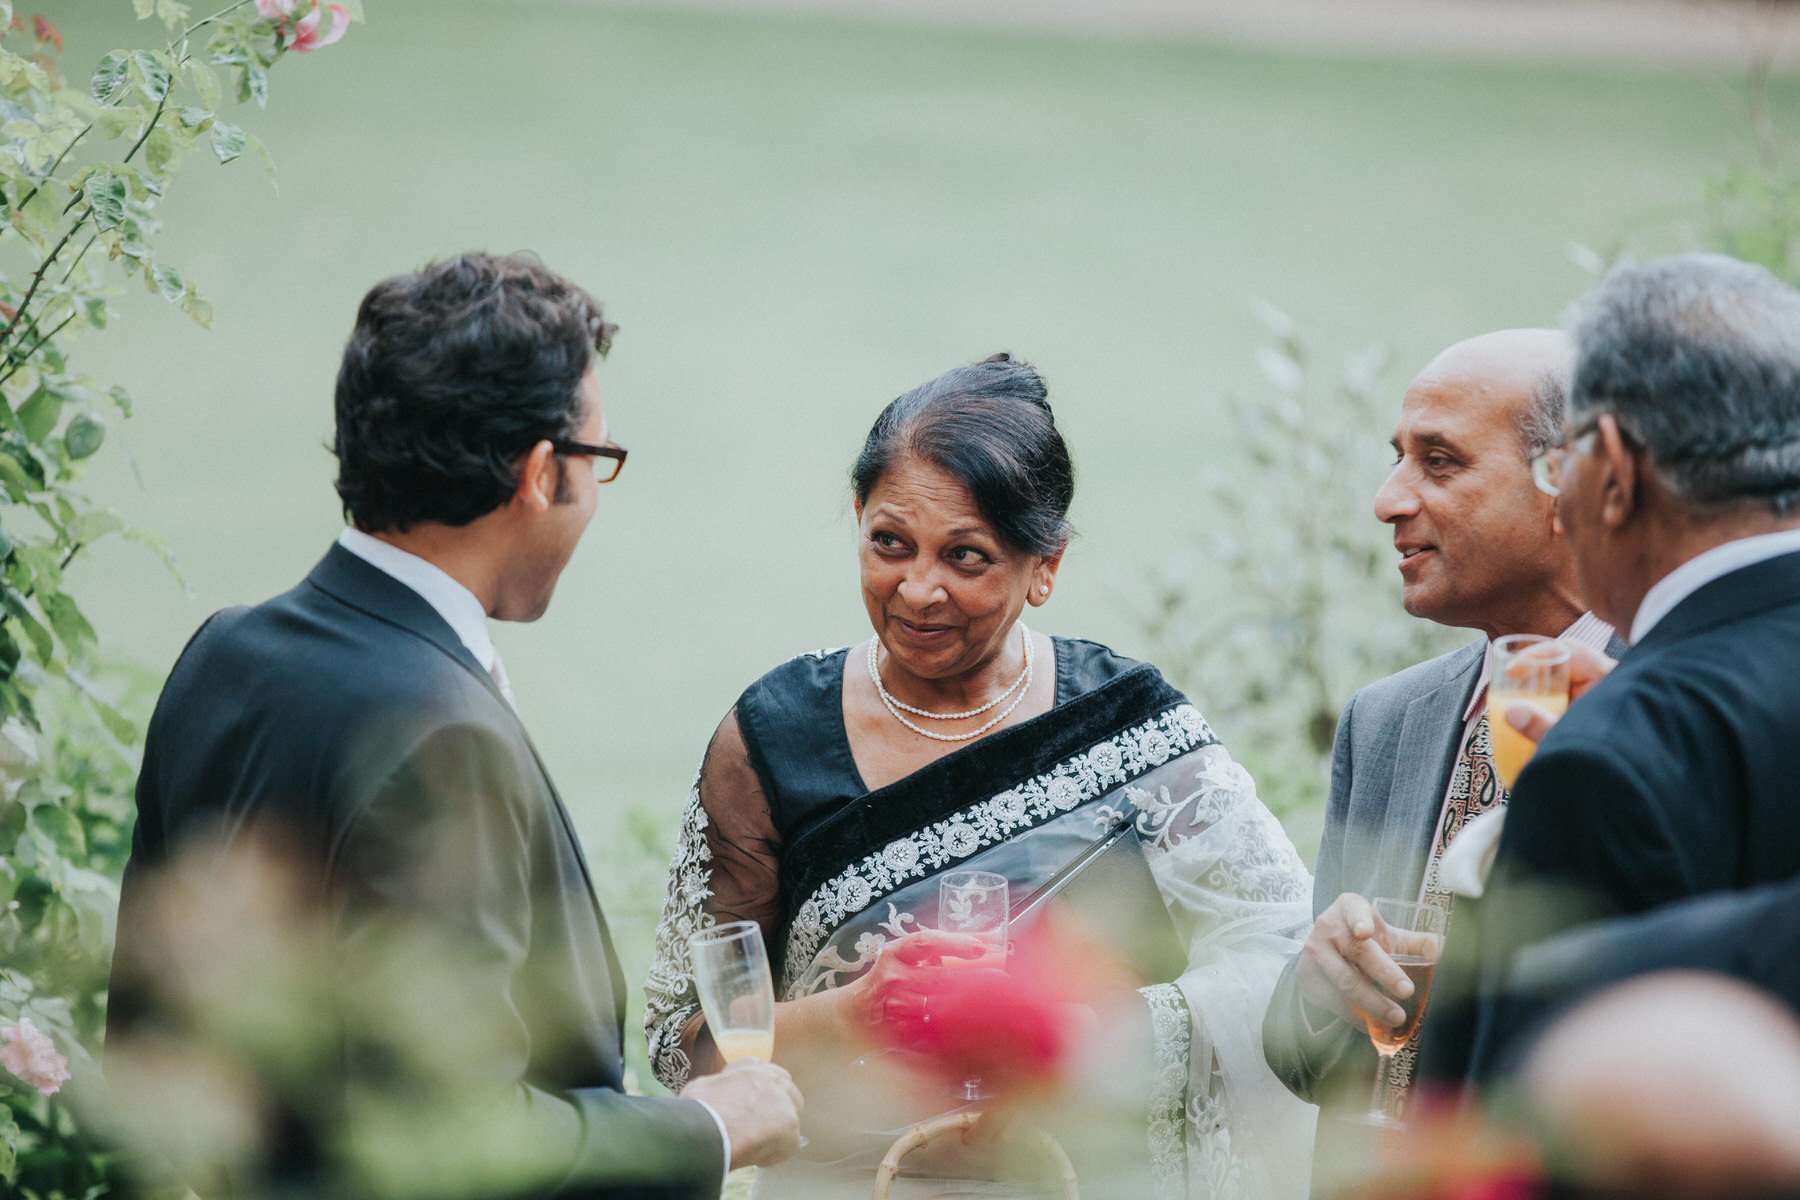 108-Anglo-Asian-London-Wedding-drinks-reception-guests-champagne-cocktails.jpg